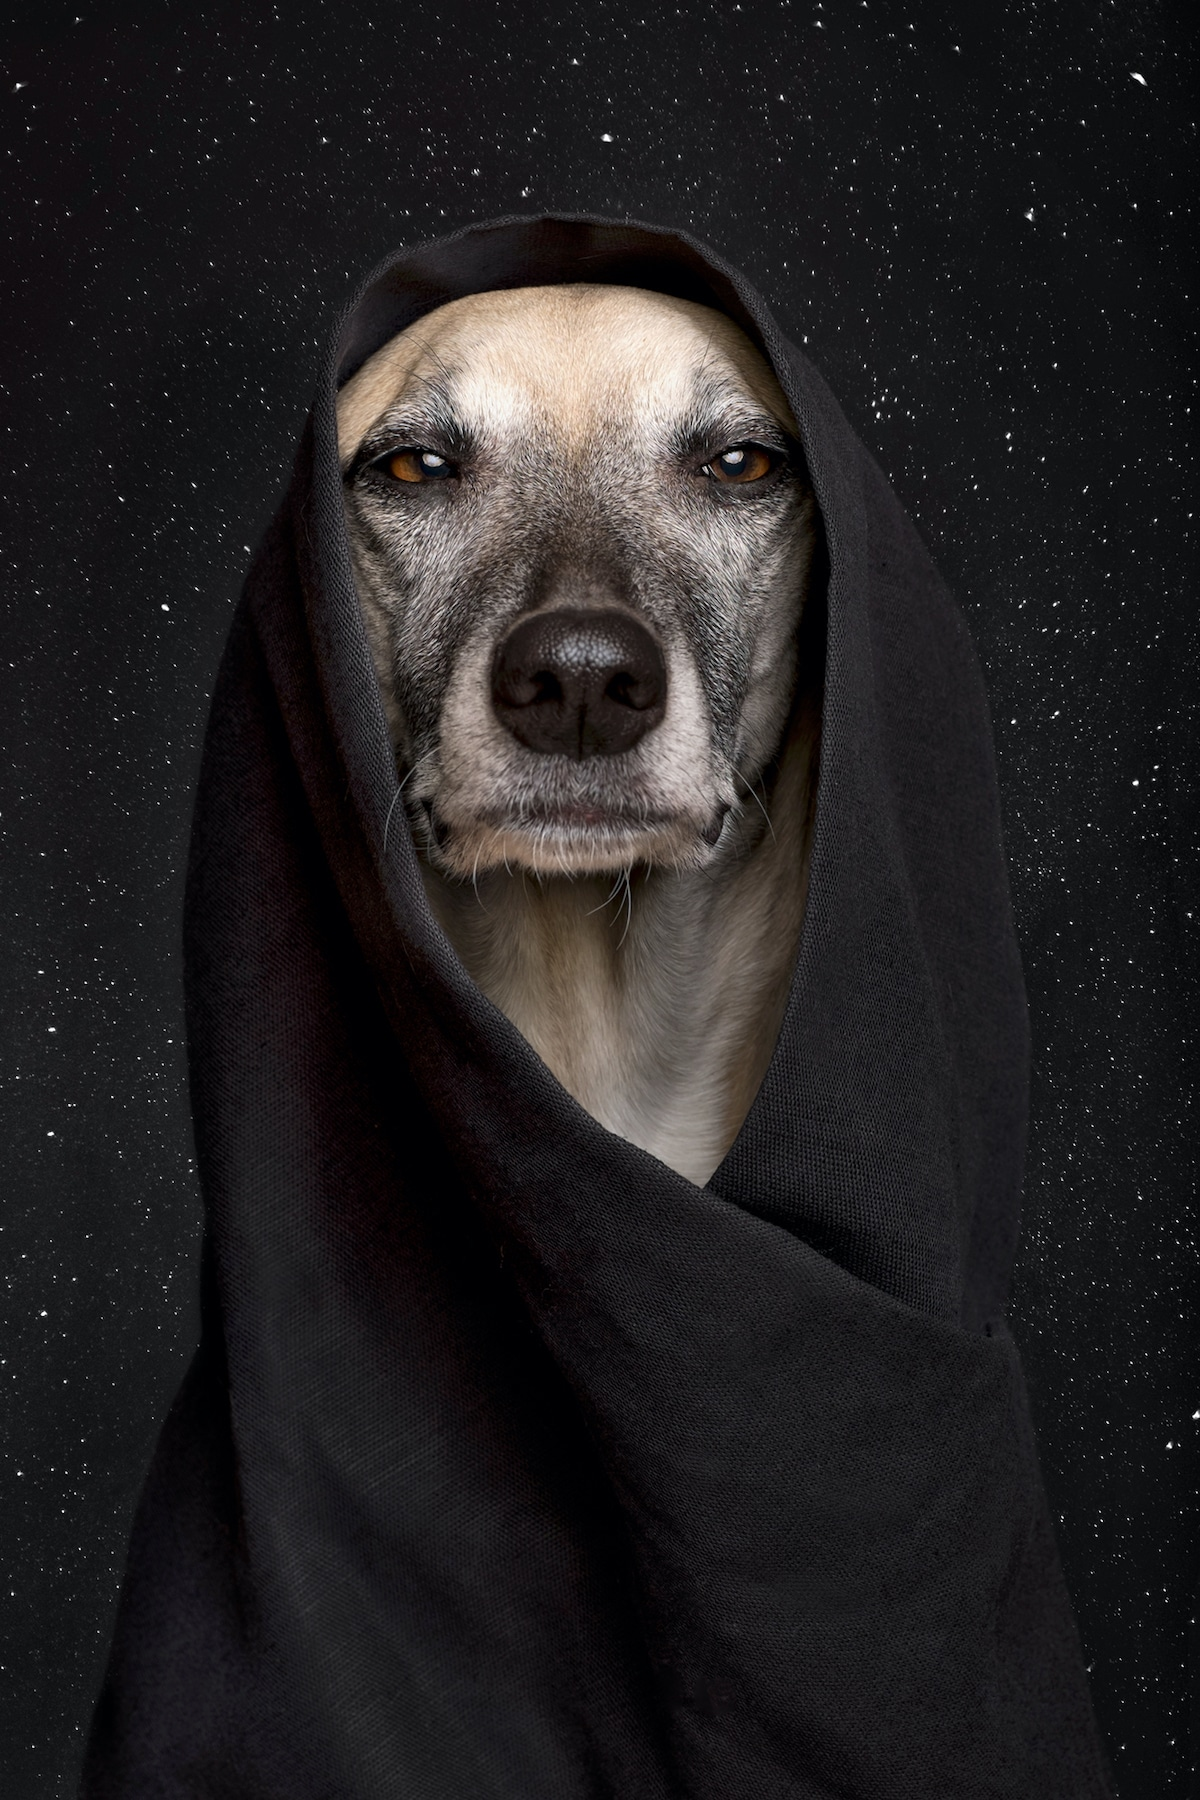 Animal Photography by Elke Vogelsang